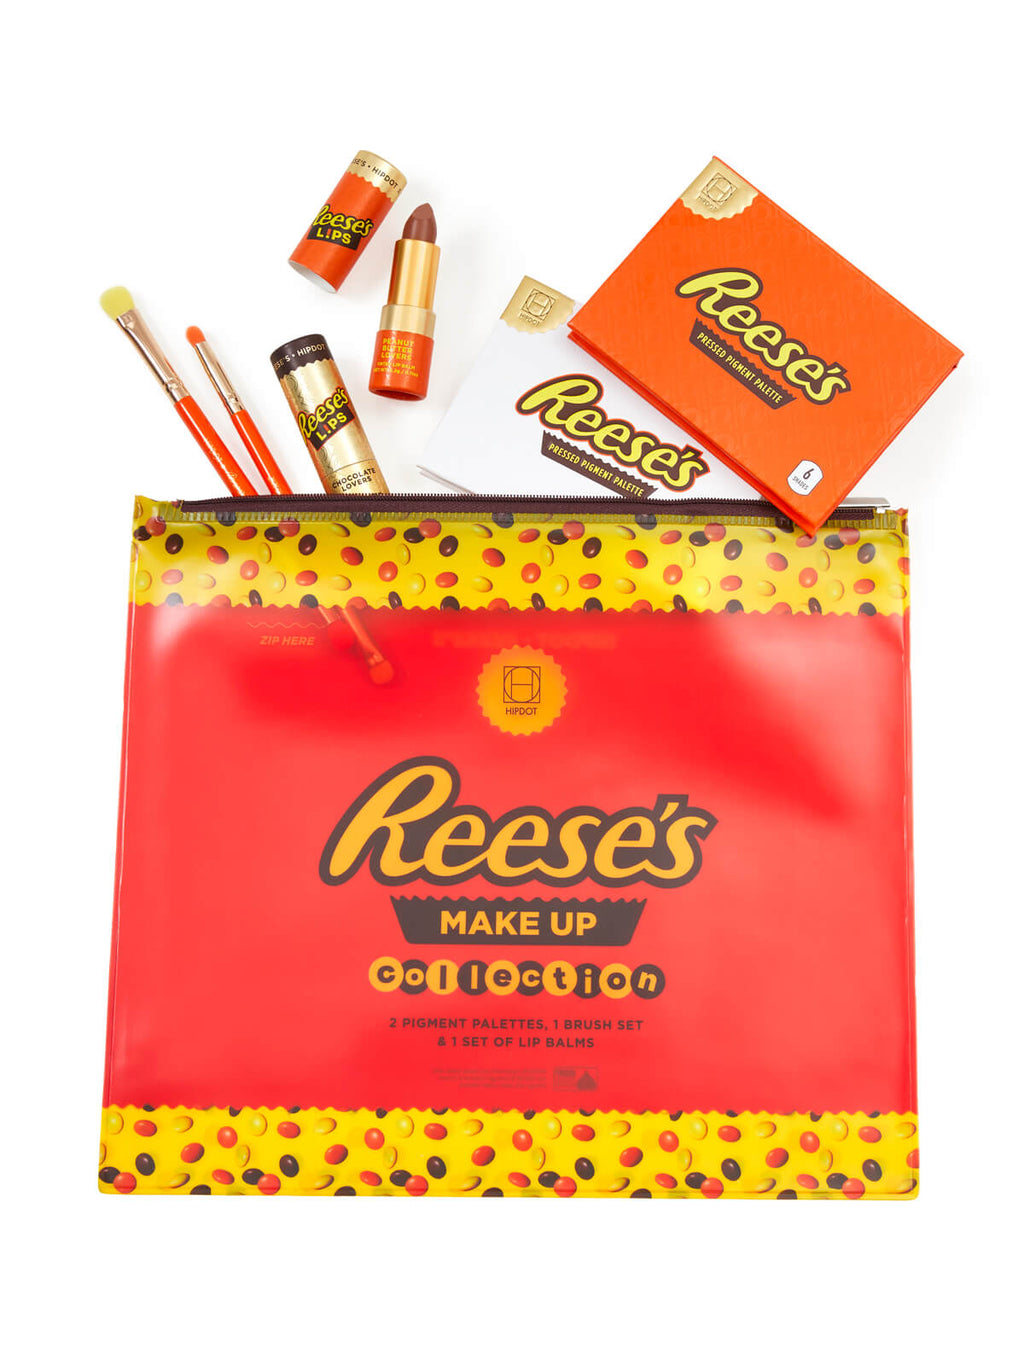 Reese's Limited Edition Collectors Bag Set